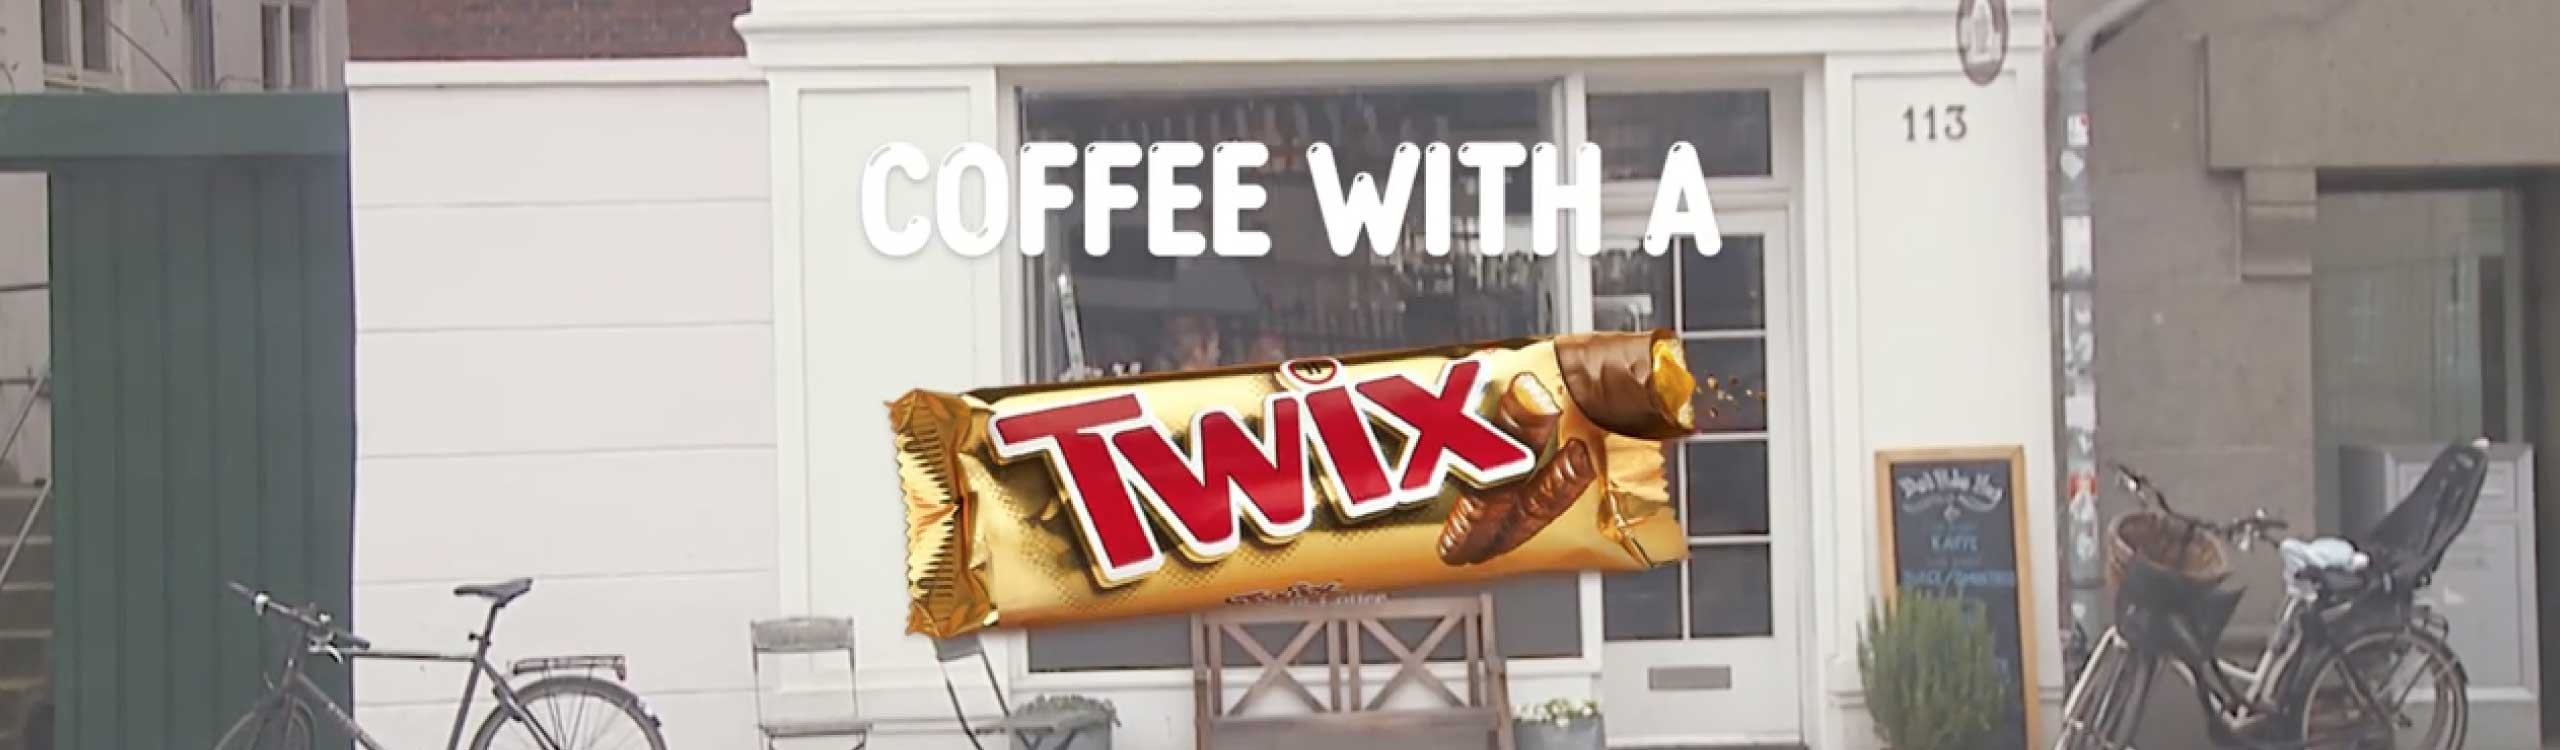 coffee-with-a-twix-mis-gafas-de-pasta-destacado